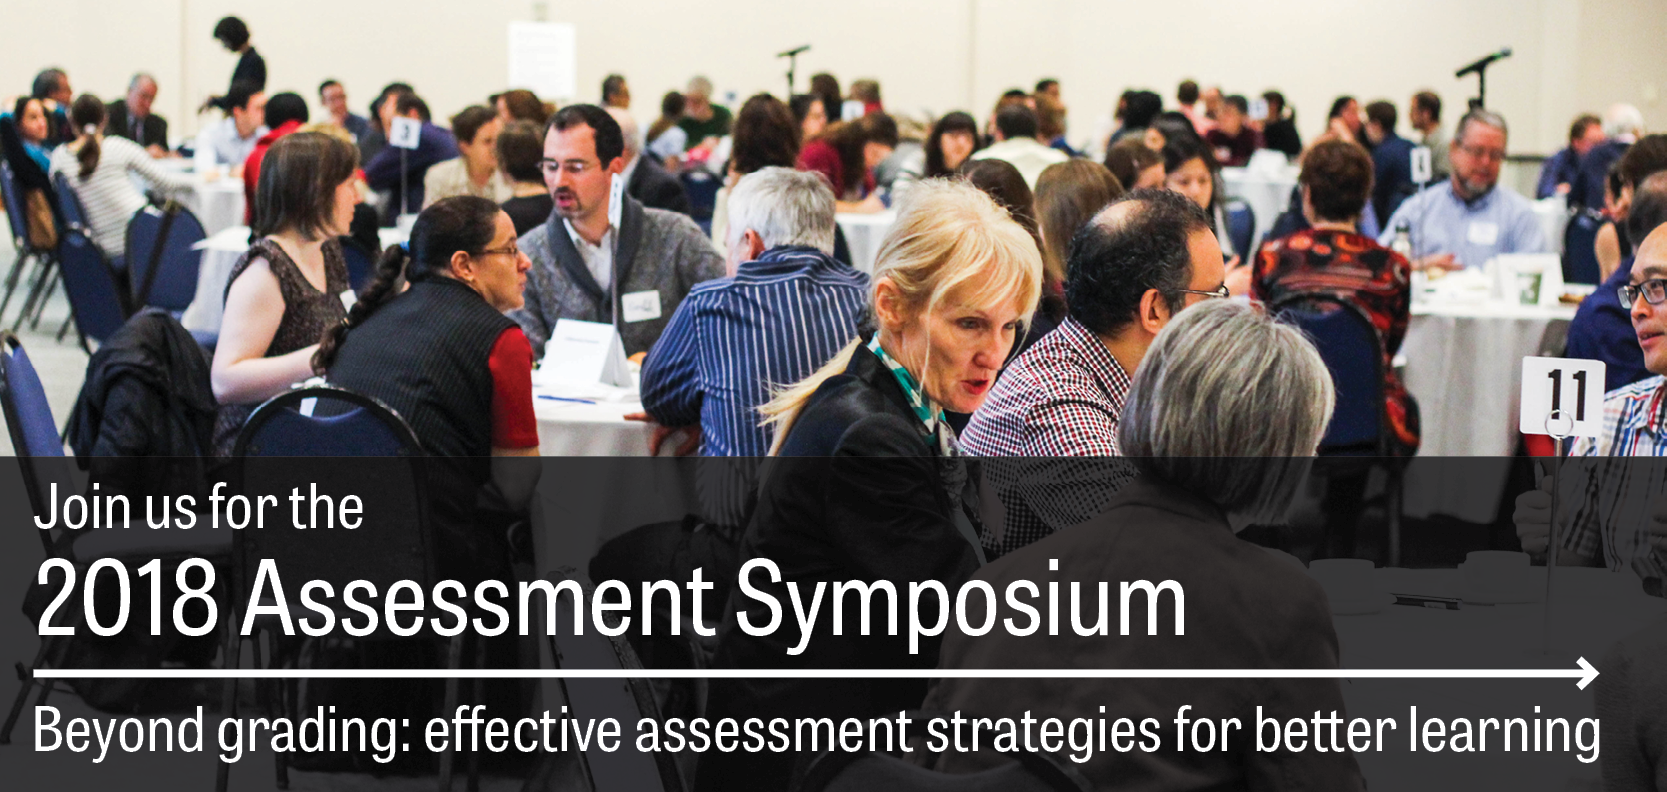 Join us for the 2018 Assessment Symposium!